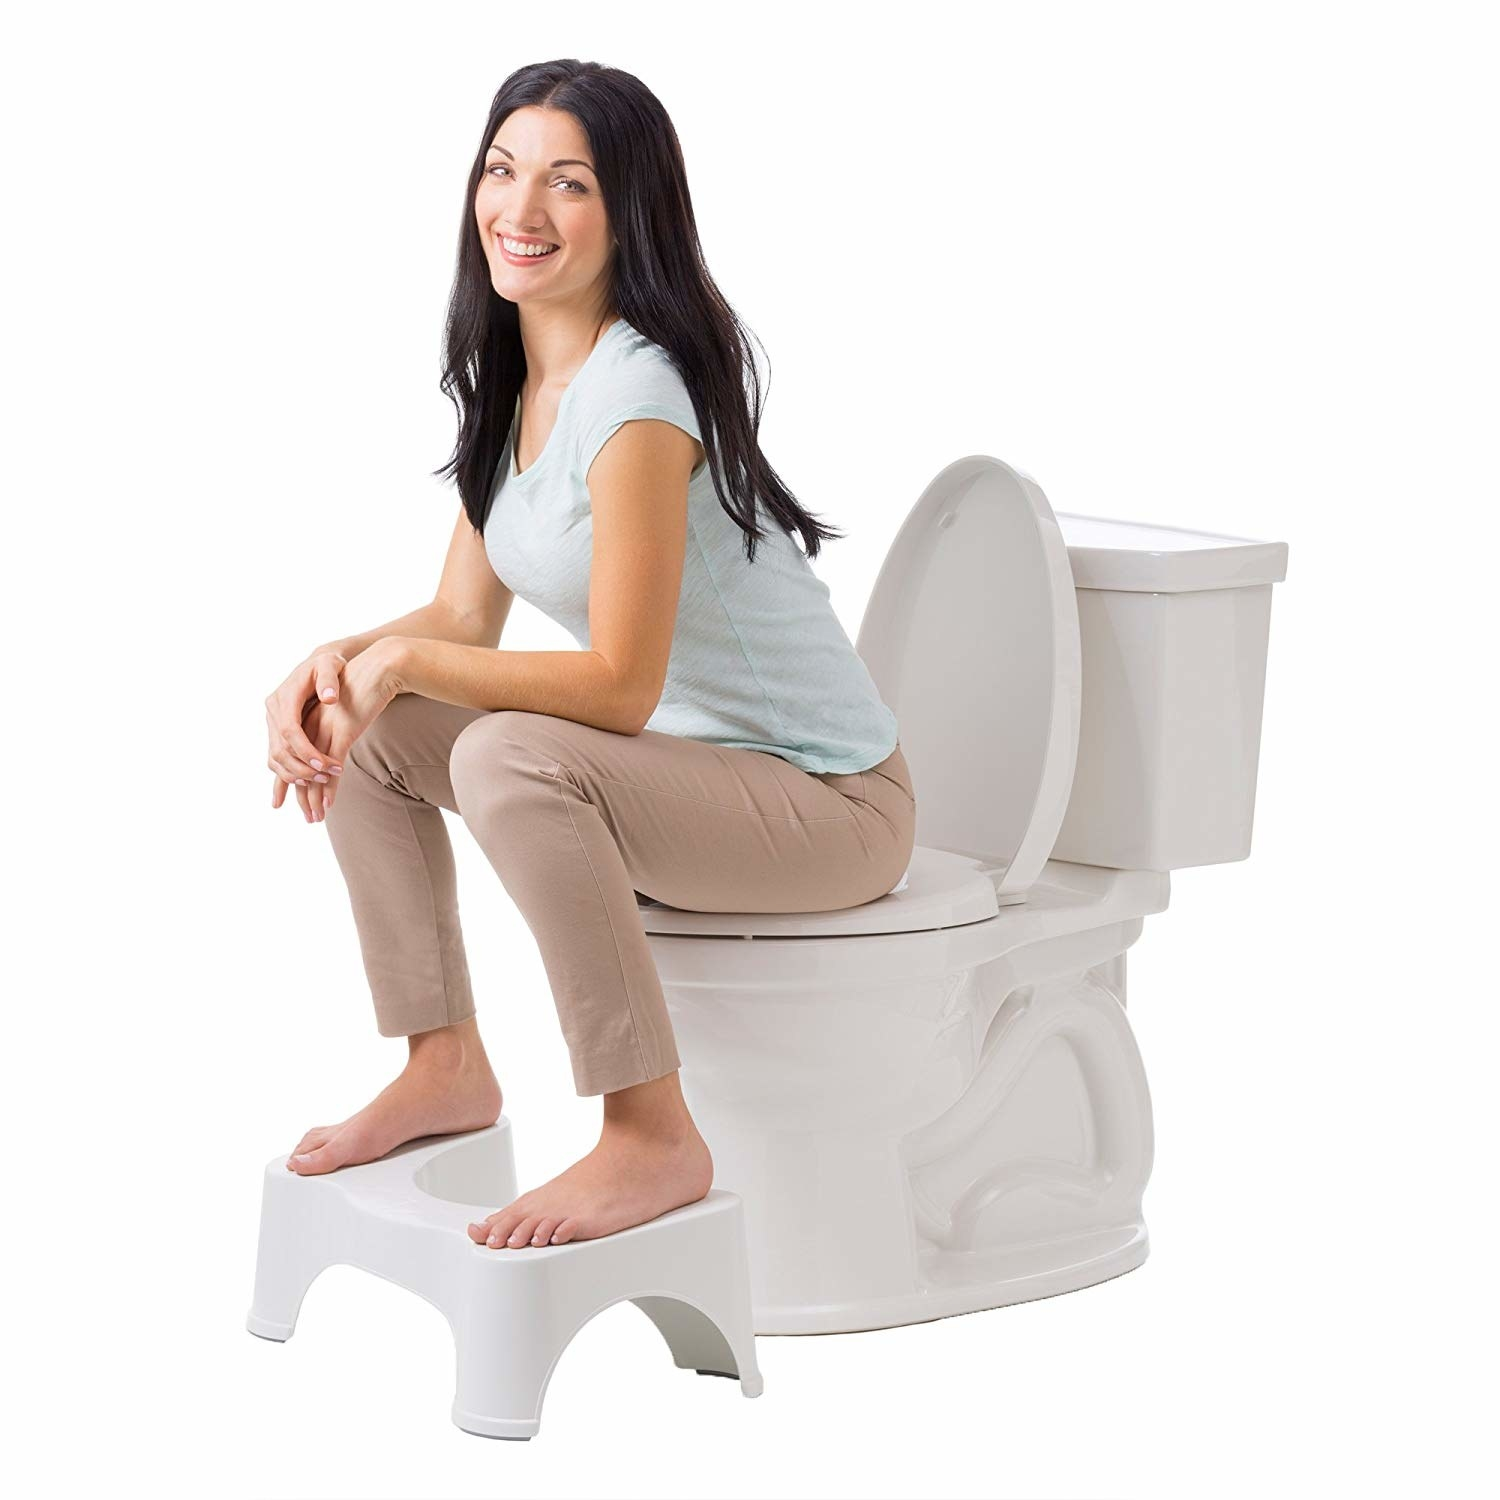 model sitting on a toilet with their feet on a squatty potty